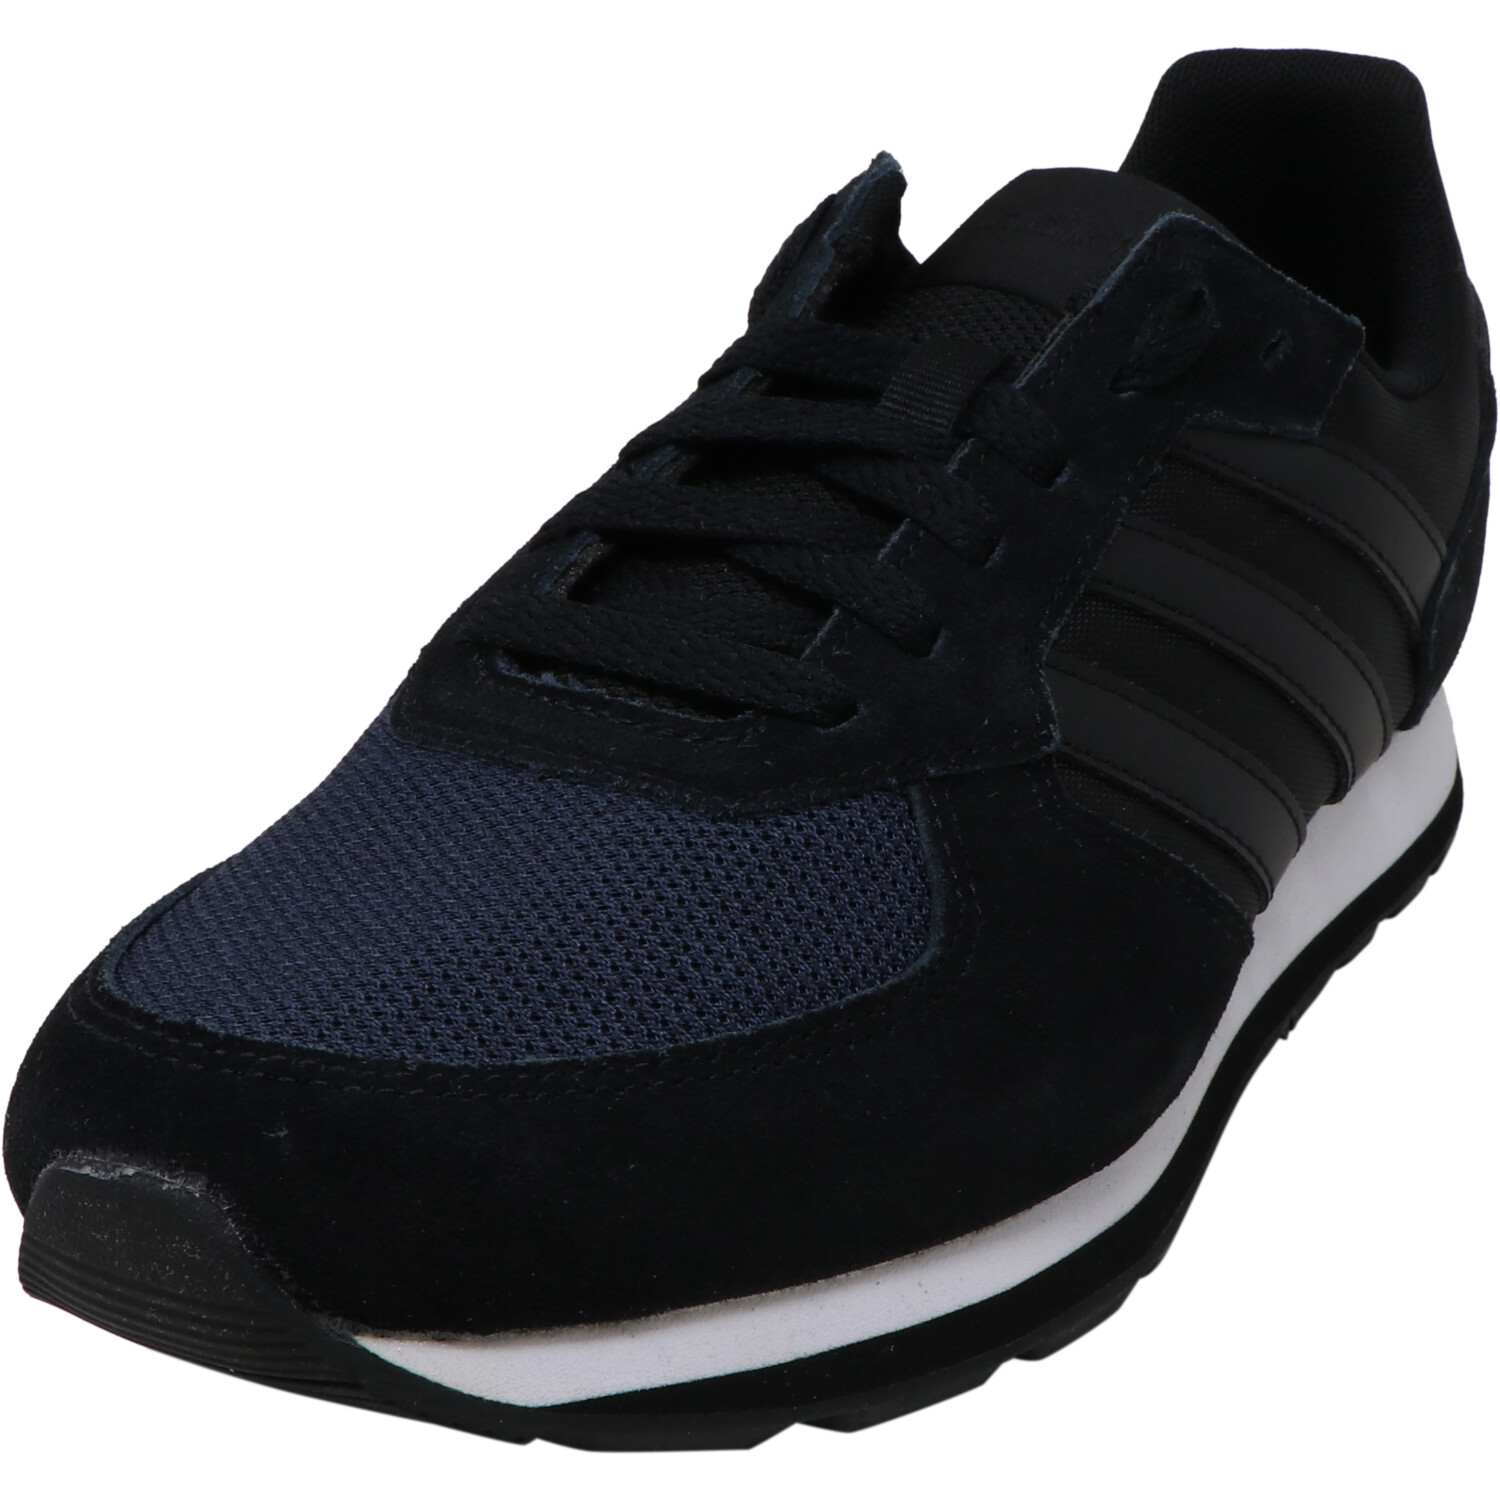 Adidas Women's 8K Running Shoes - 8.5M - Core Black / Core Black / Legend Ink